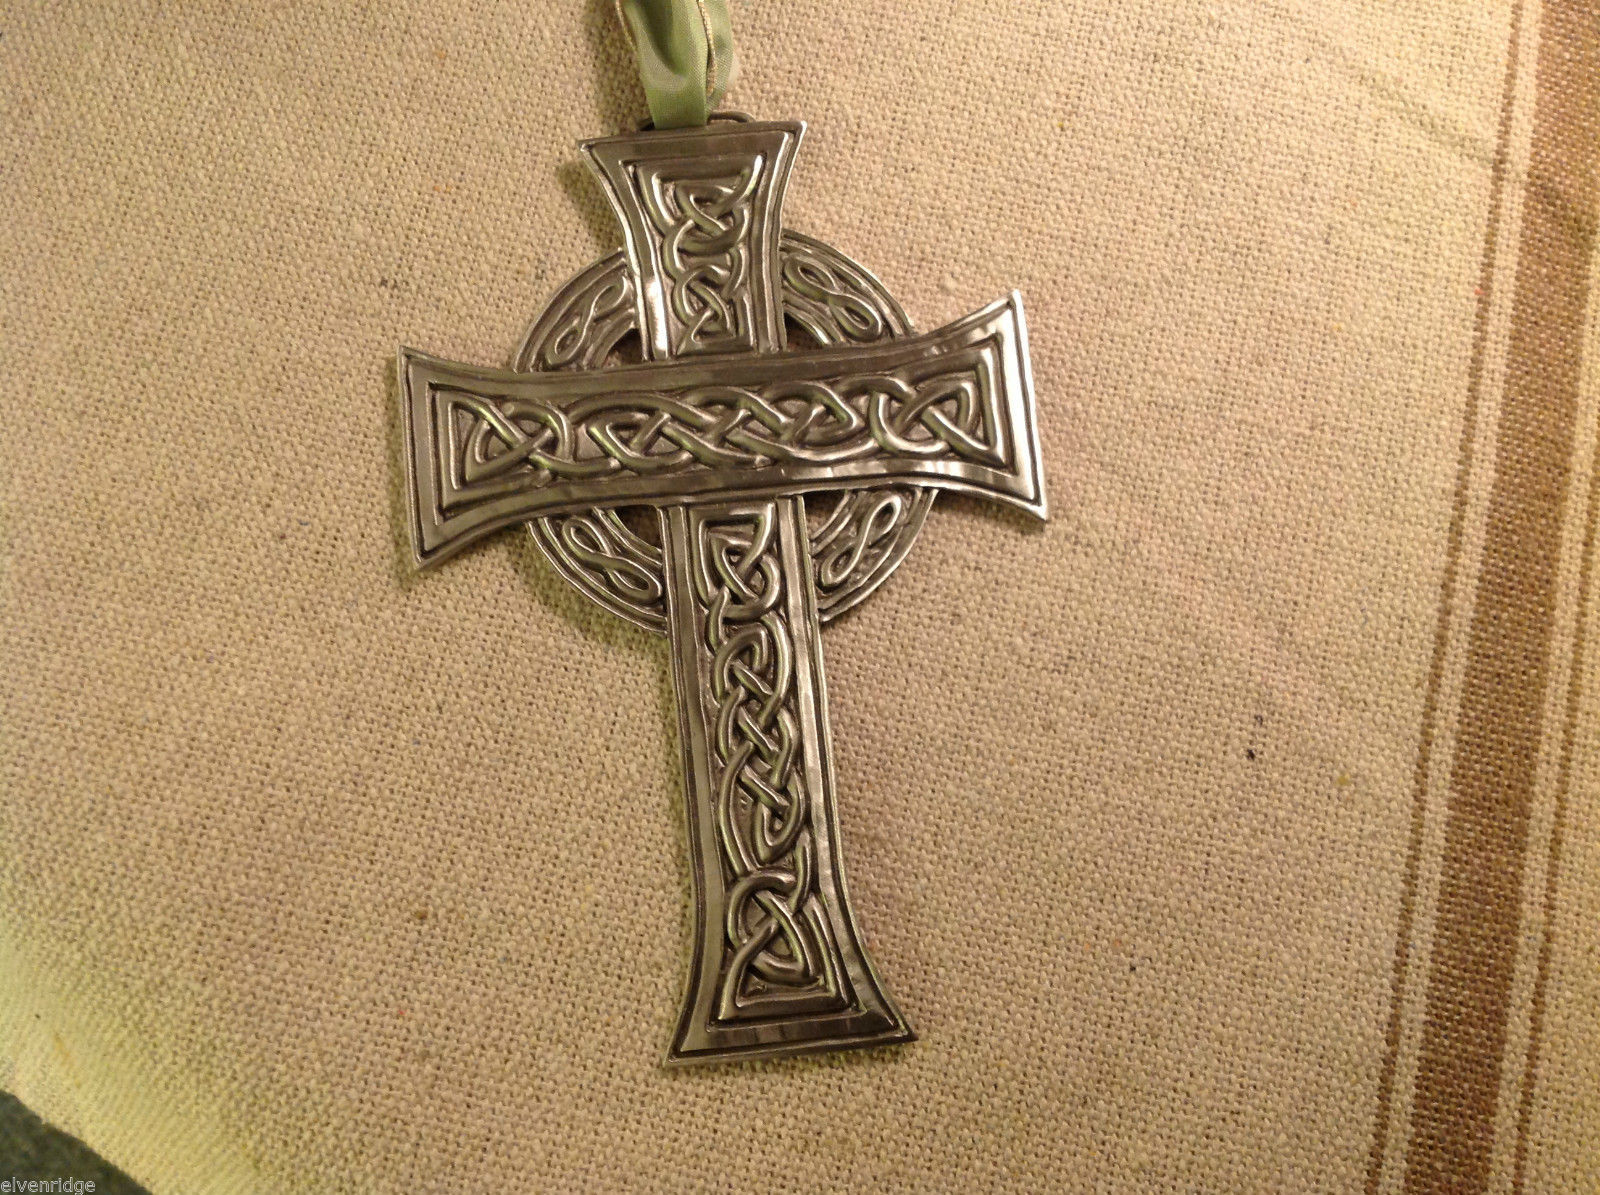 New with tags Pewter hand made Celtic cross hanging wall ornament Kells prayer